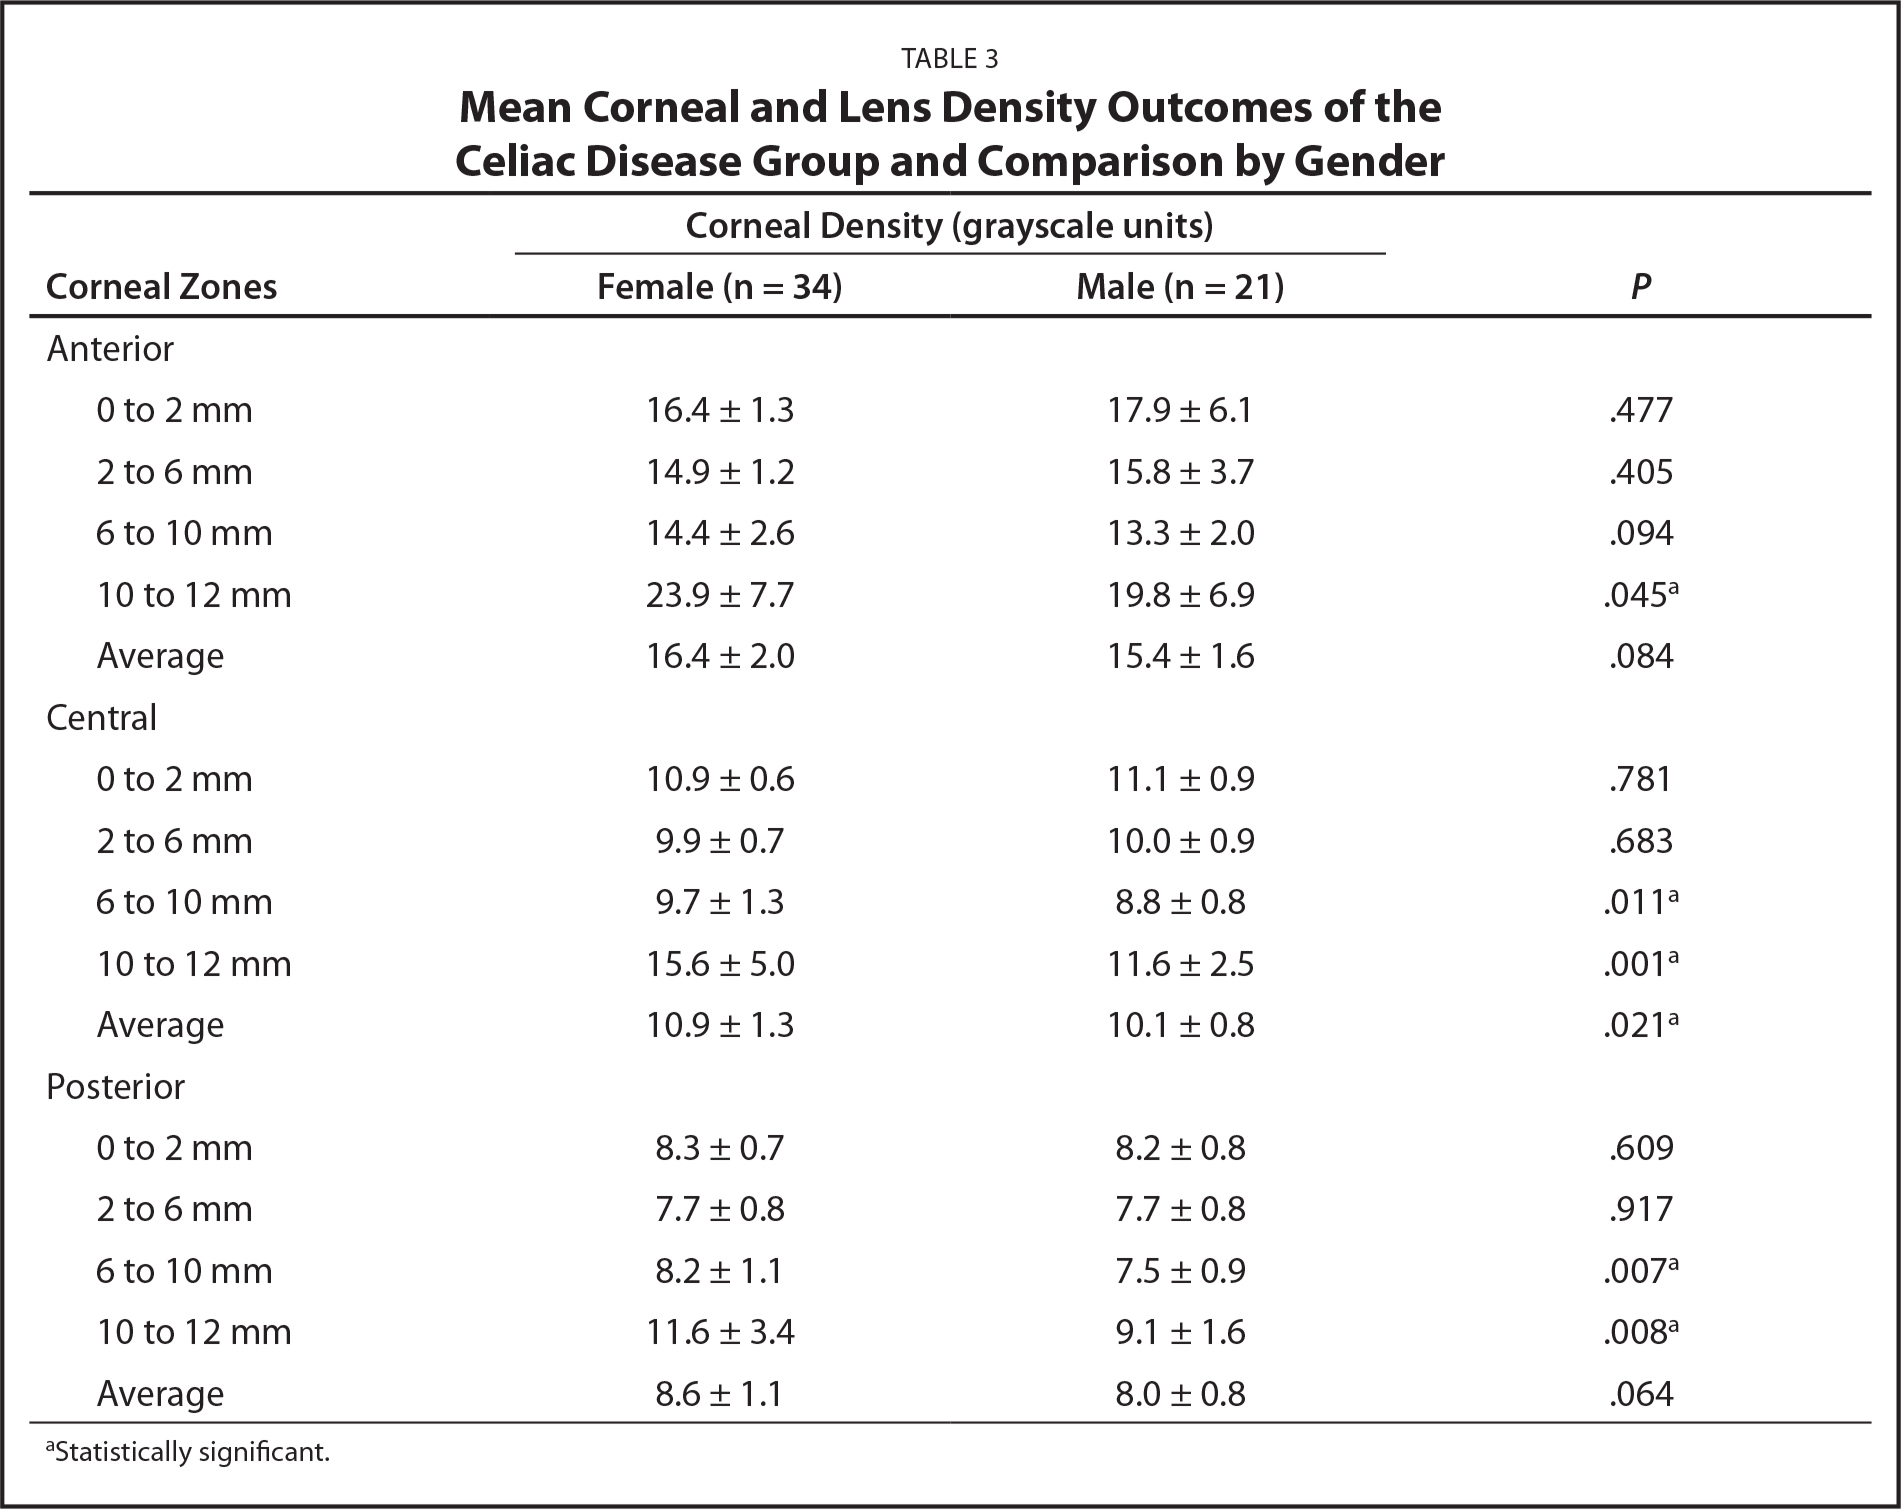 Mean Corneal and Lens Density Outcomes of the Celiac Disease Group and Comparison by Gender